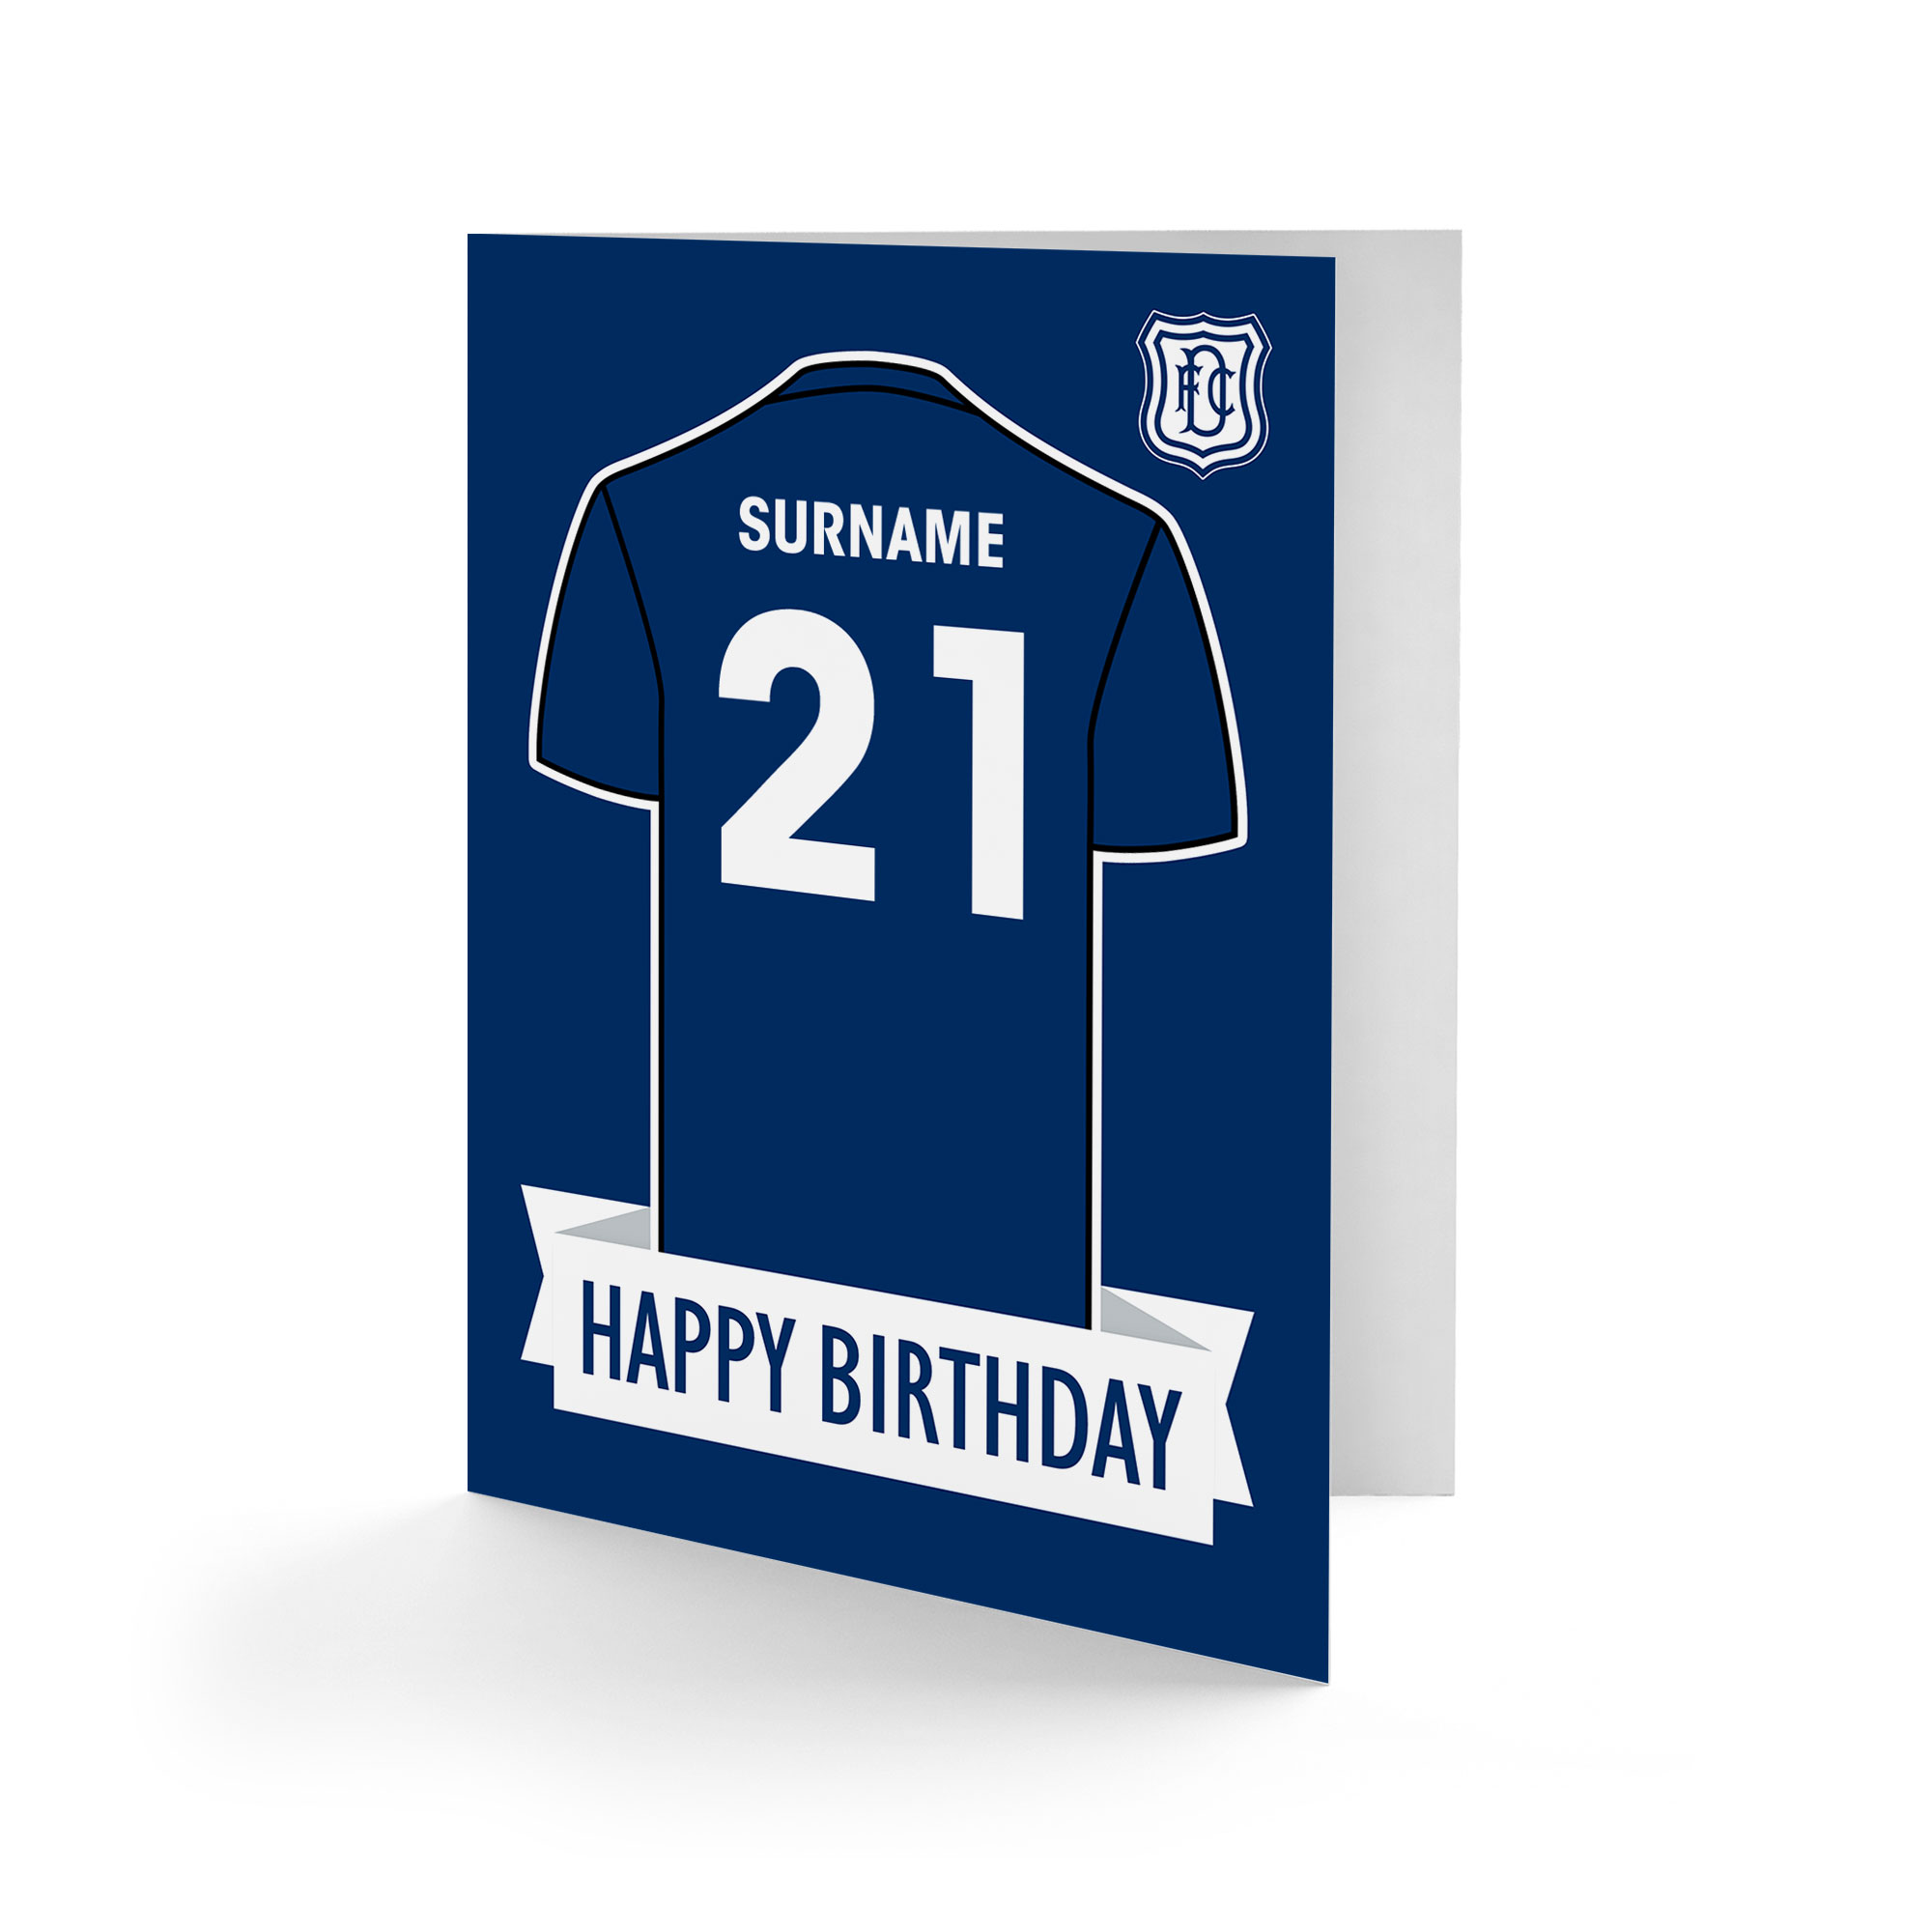 Dundee FC Shirt Birthday Card